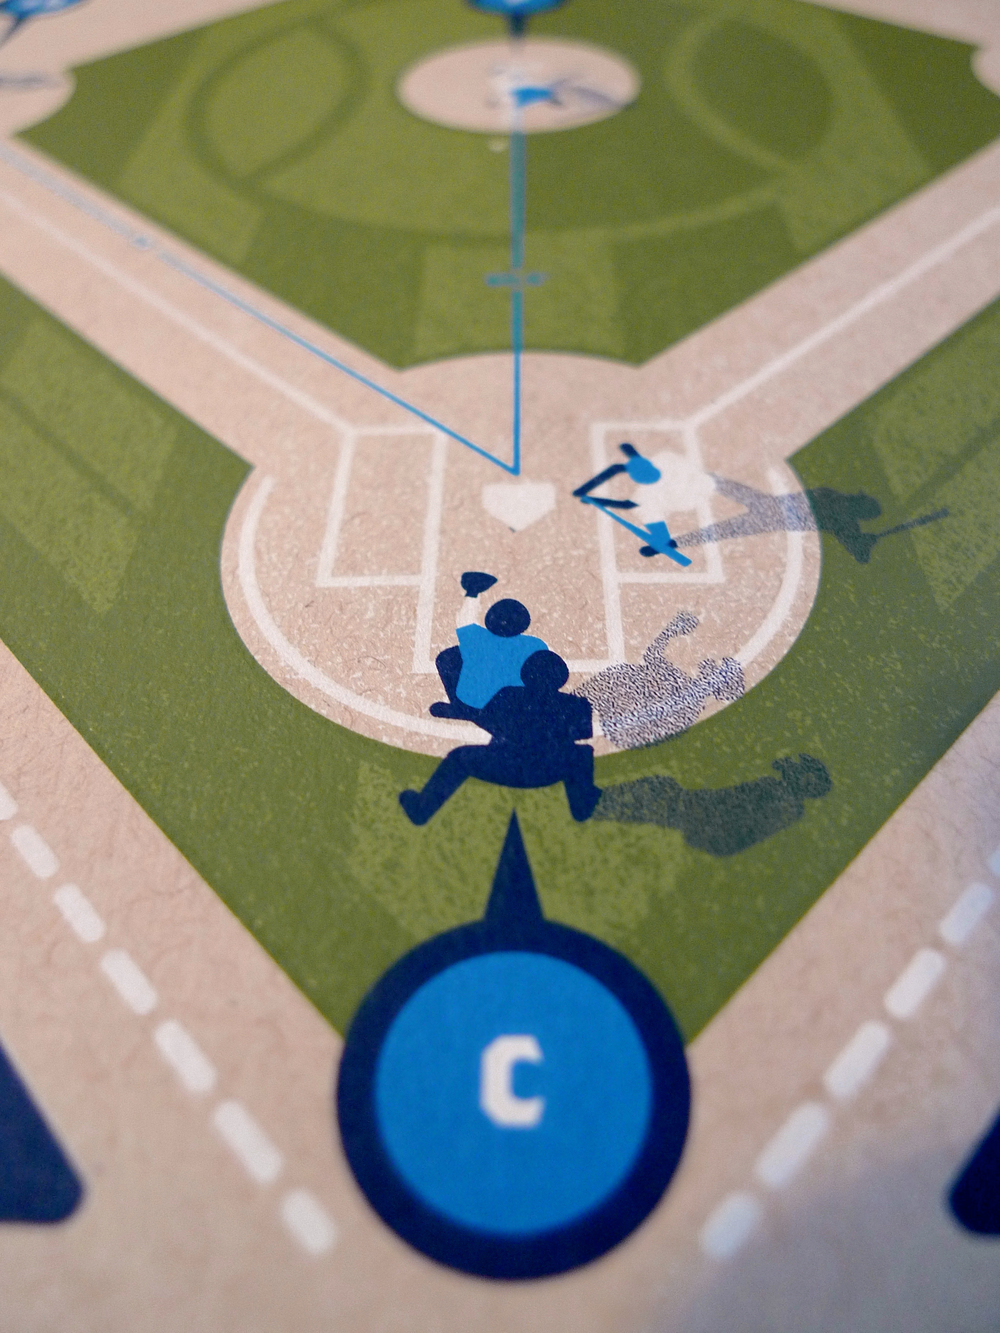 Baseball Infographic by DKNG